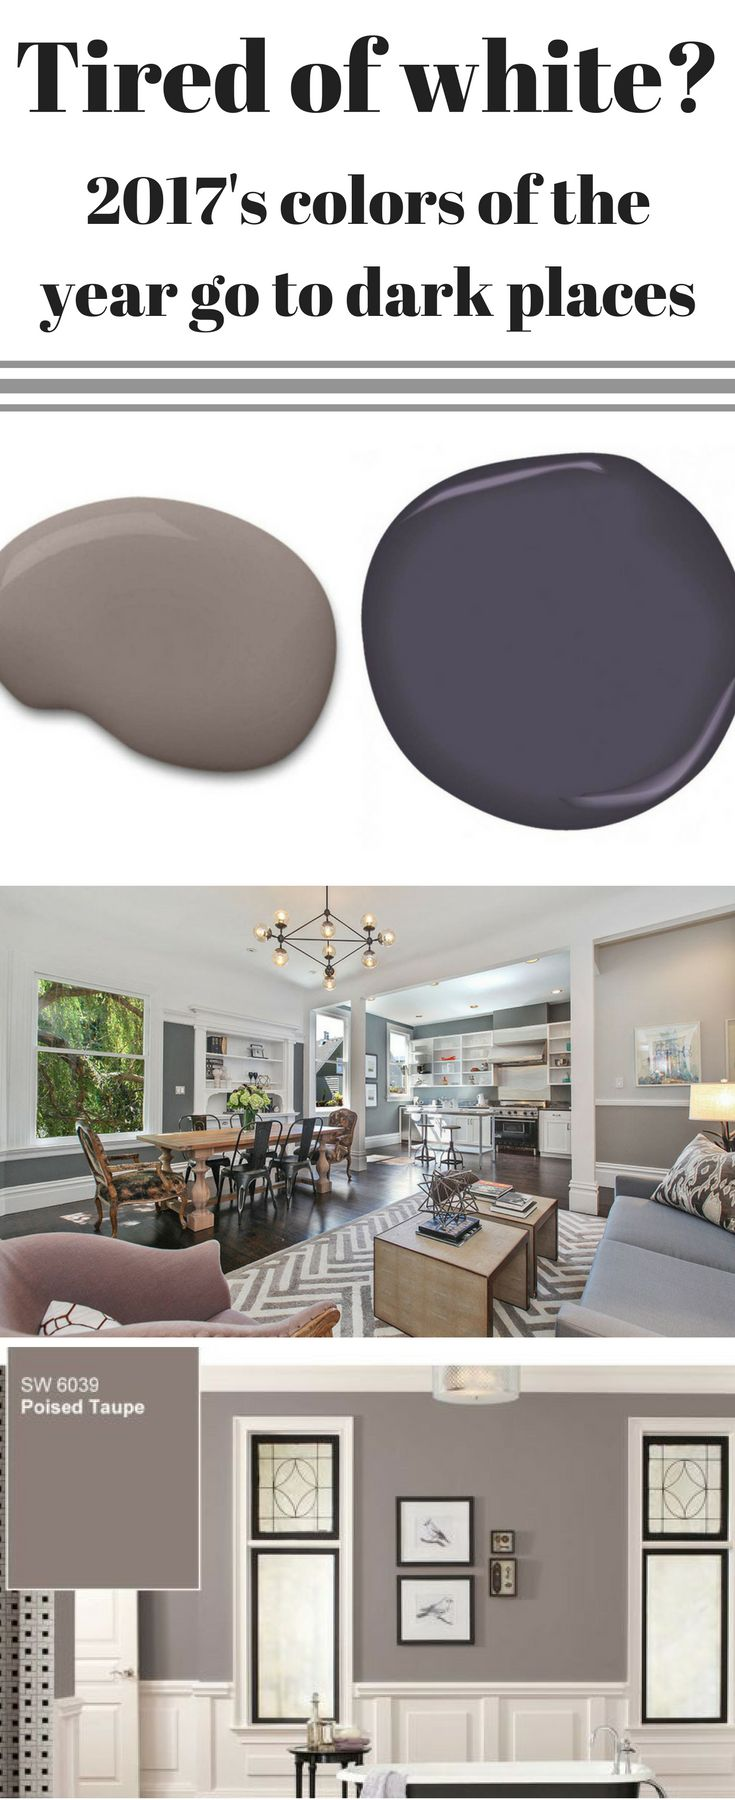 2017 s Colors of the Year Go to a Dark Place  Dining Room Colors2017 Living Best 25 Benjamin moore taupe ideas on Pinterest Taupe paint